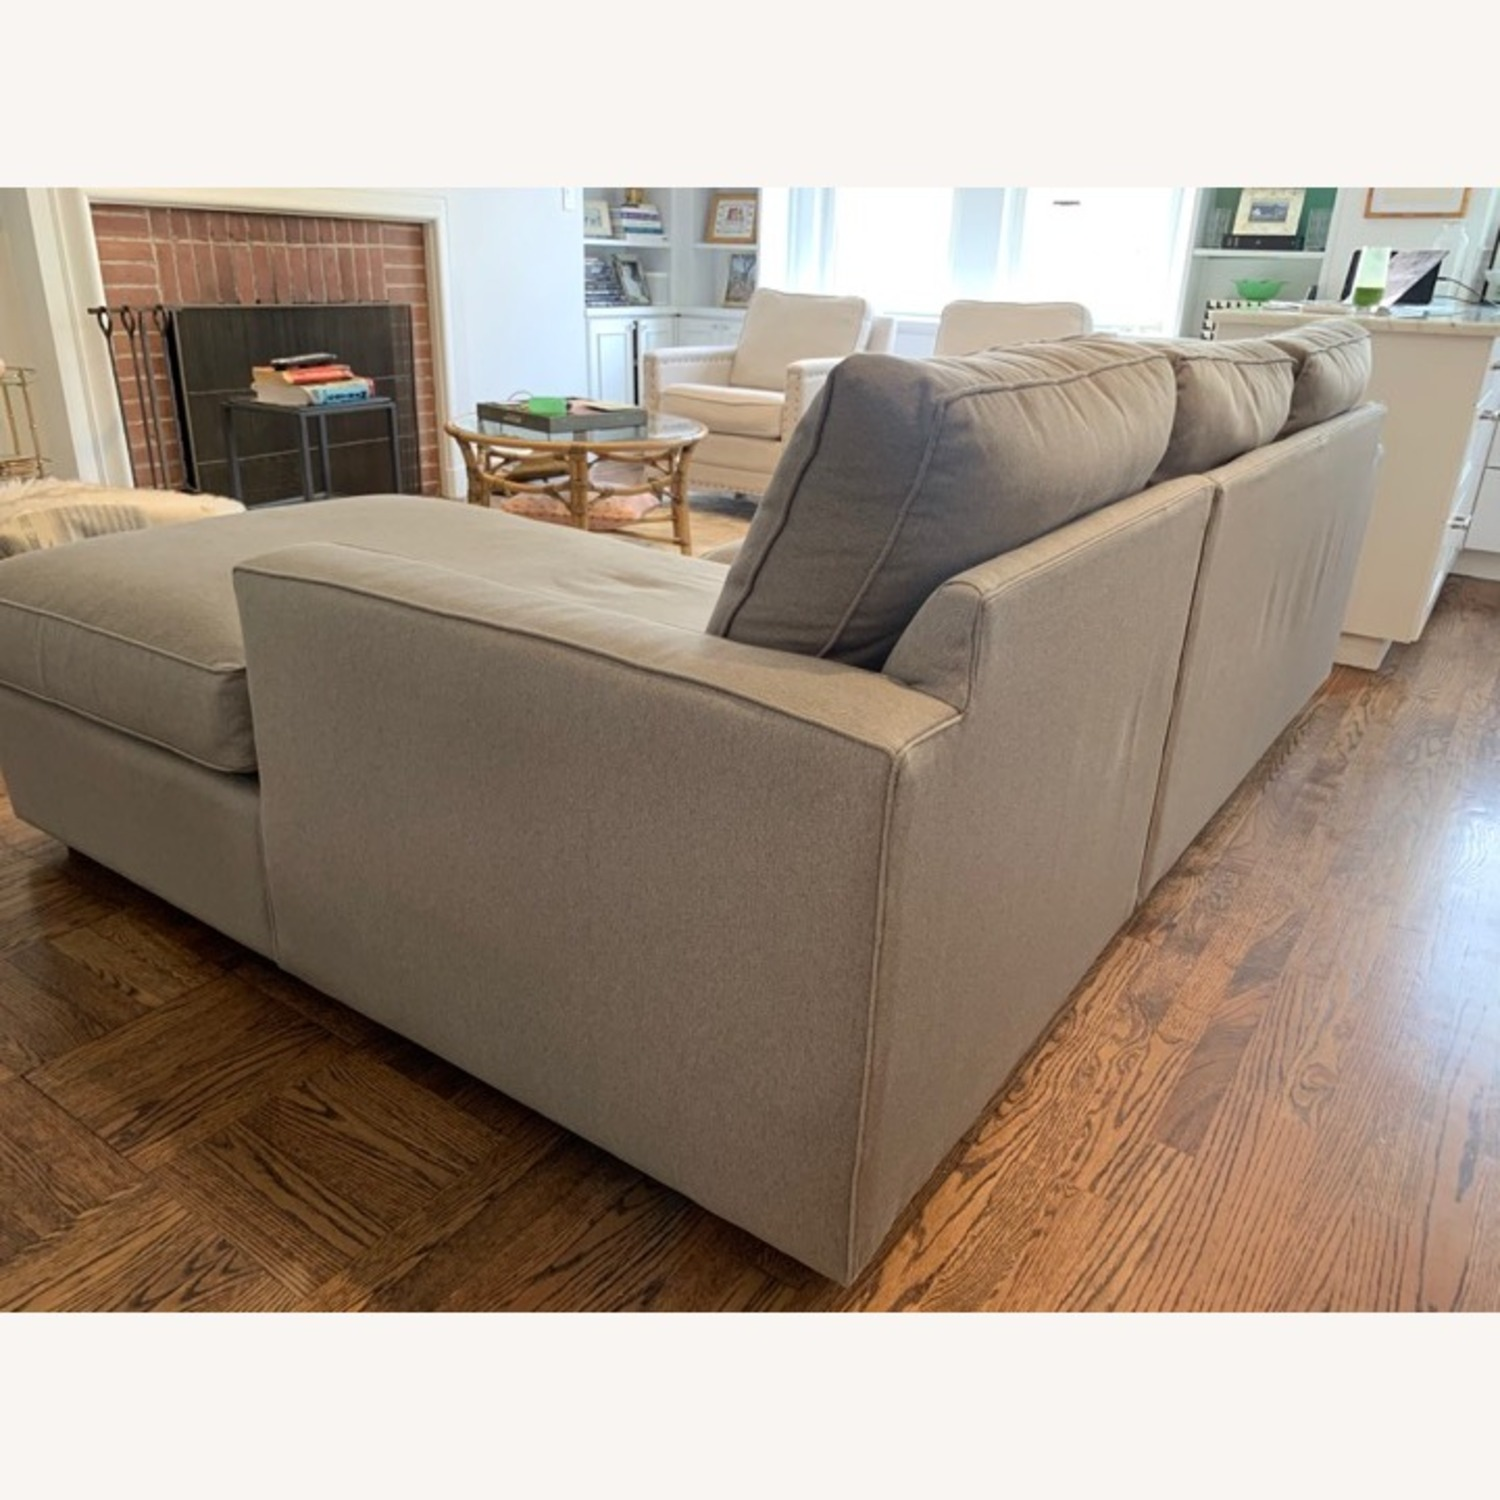 Room & Board York Sofa with Chaise - image-3